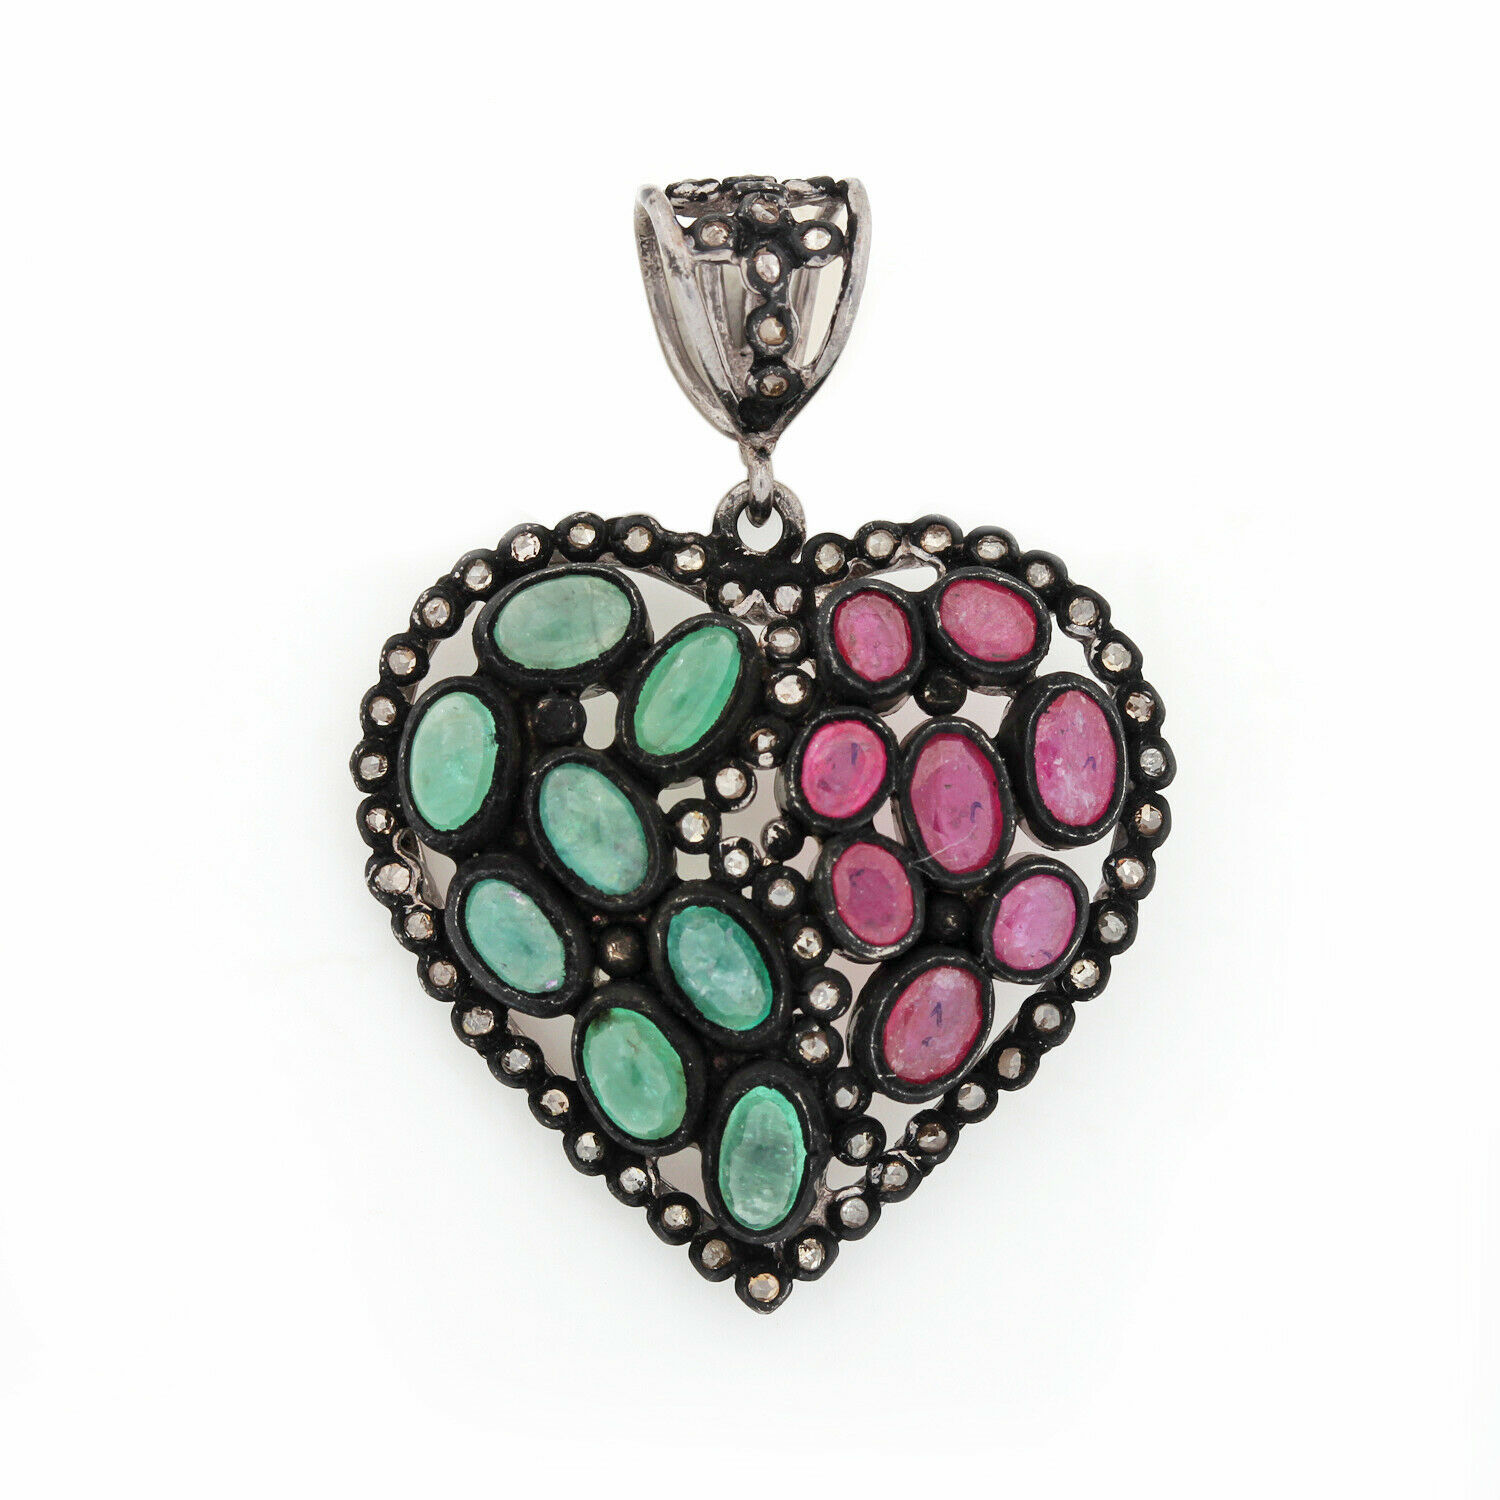 Primary image for 1.95Ct Ruby Gemstone Pendant Diamond Solid Pave 925 Sterling Silver Jewelry Fine